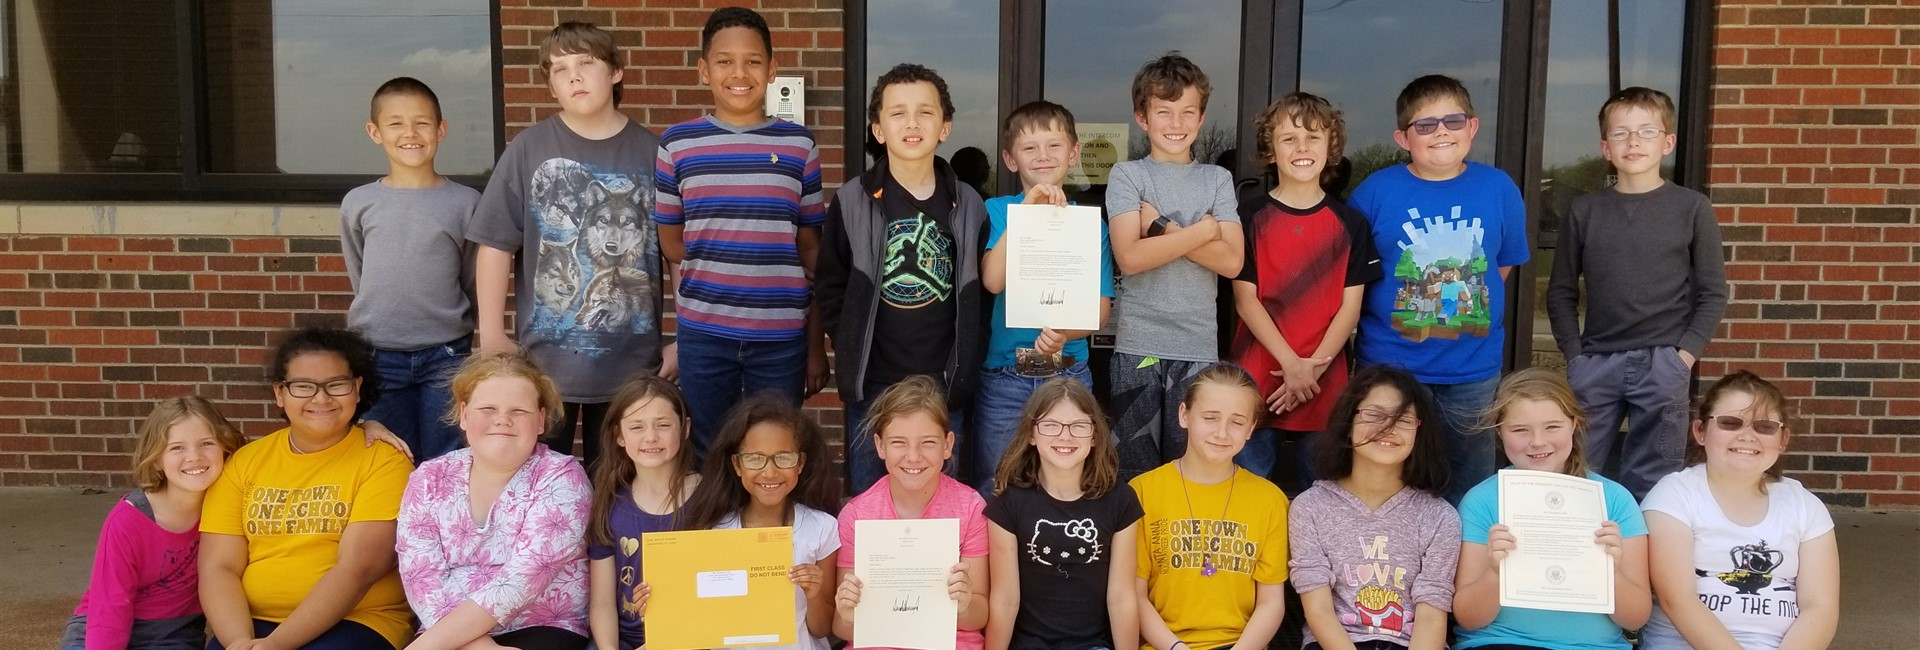 4th Graders Receive Letters From President Trump